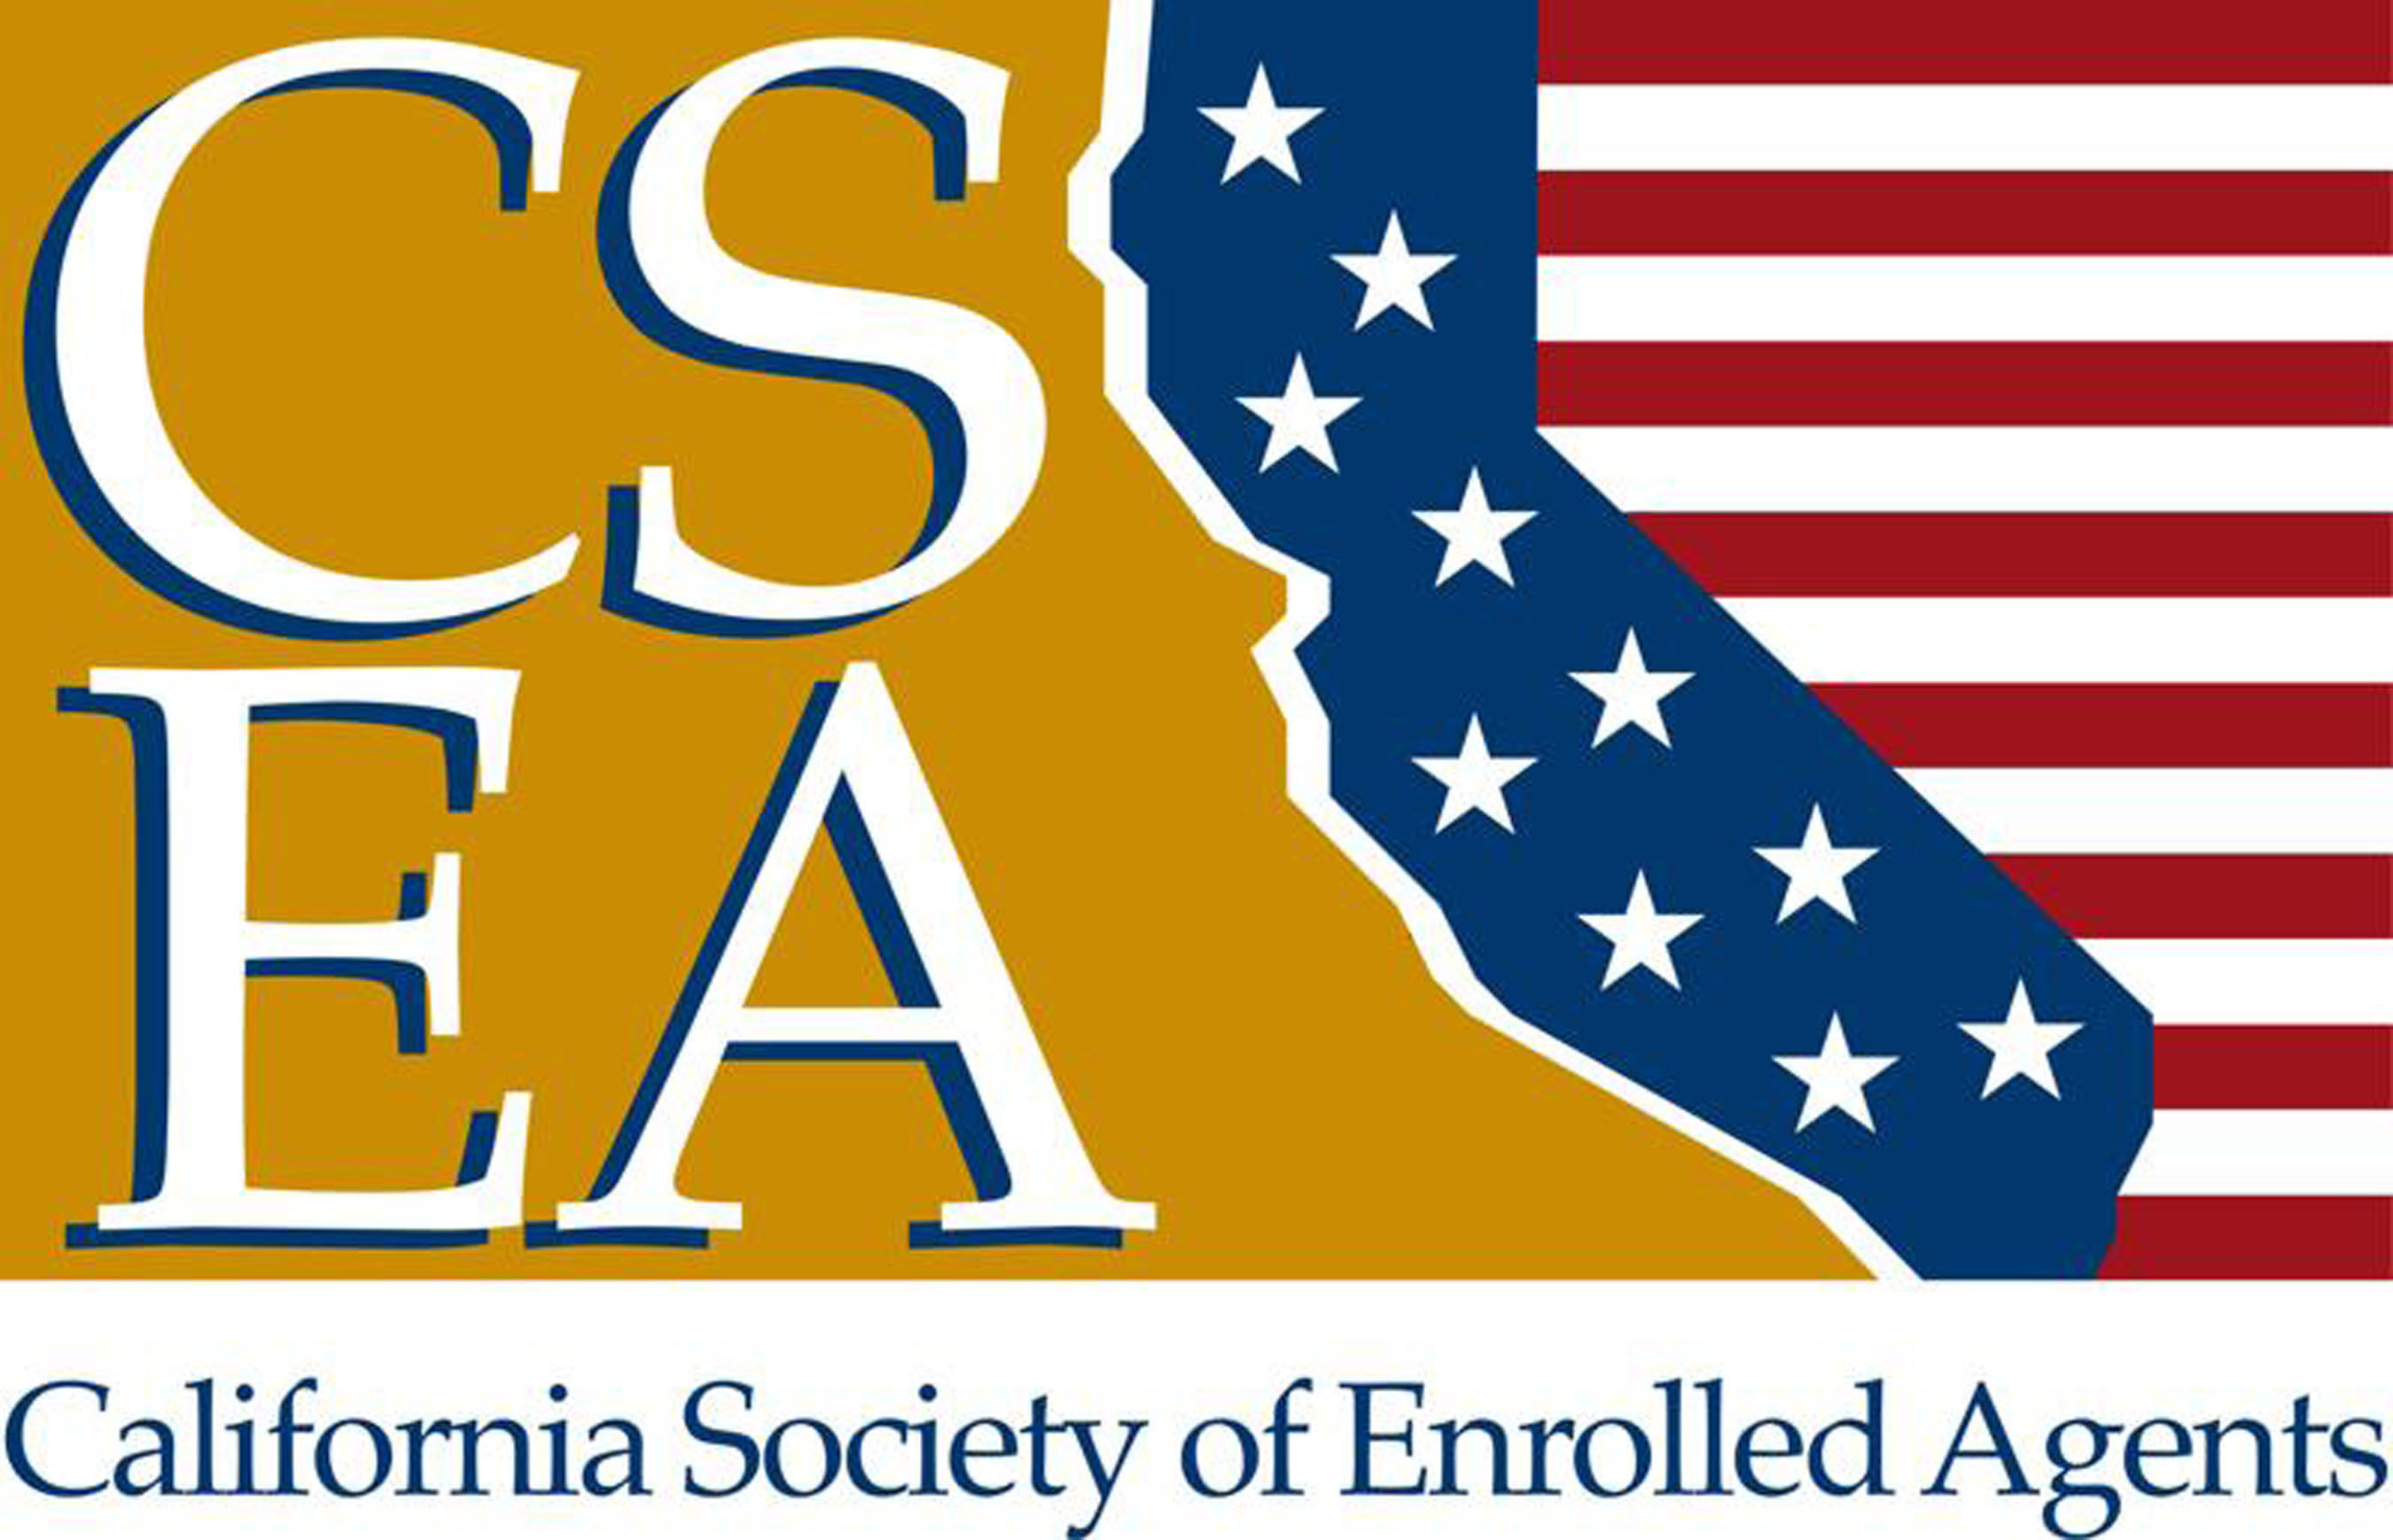 California Society of Enrolled Agents Logo.